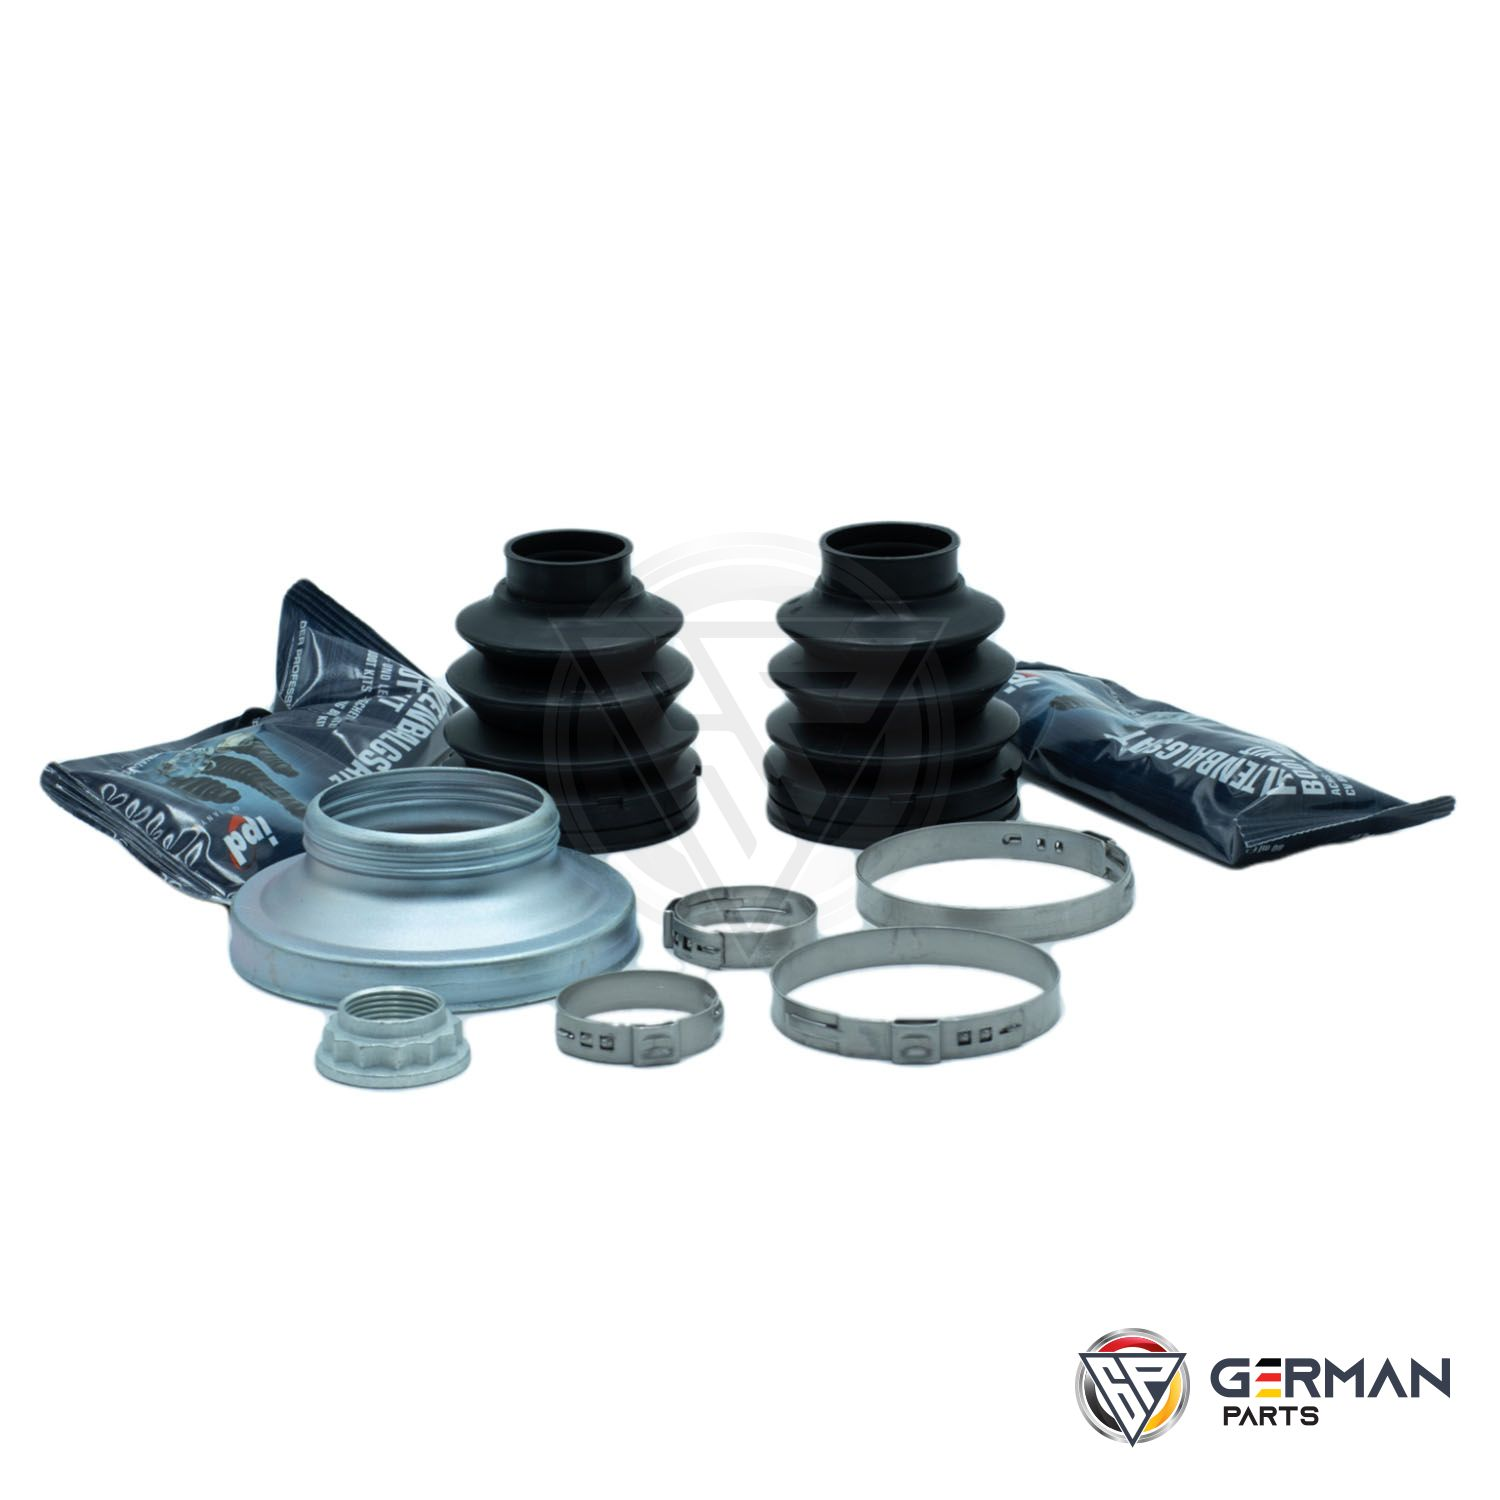 Buy Autex Axle Boot Kit 0003570091 - German Parts